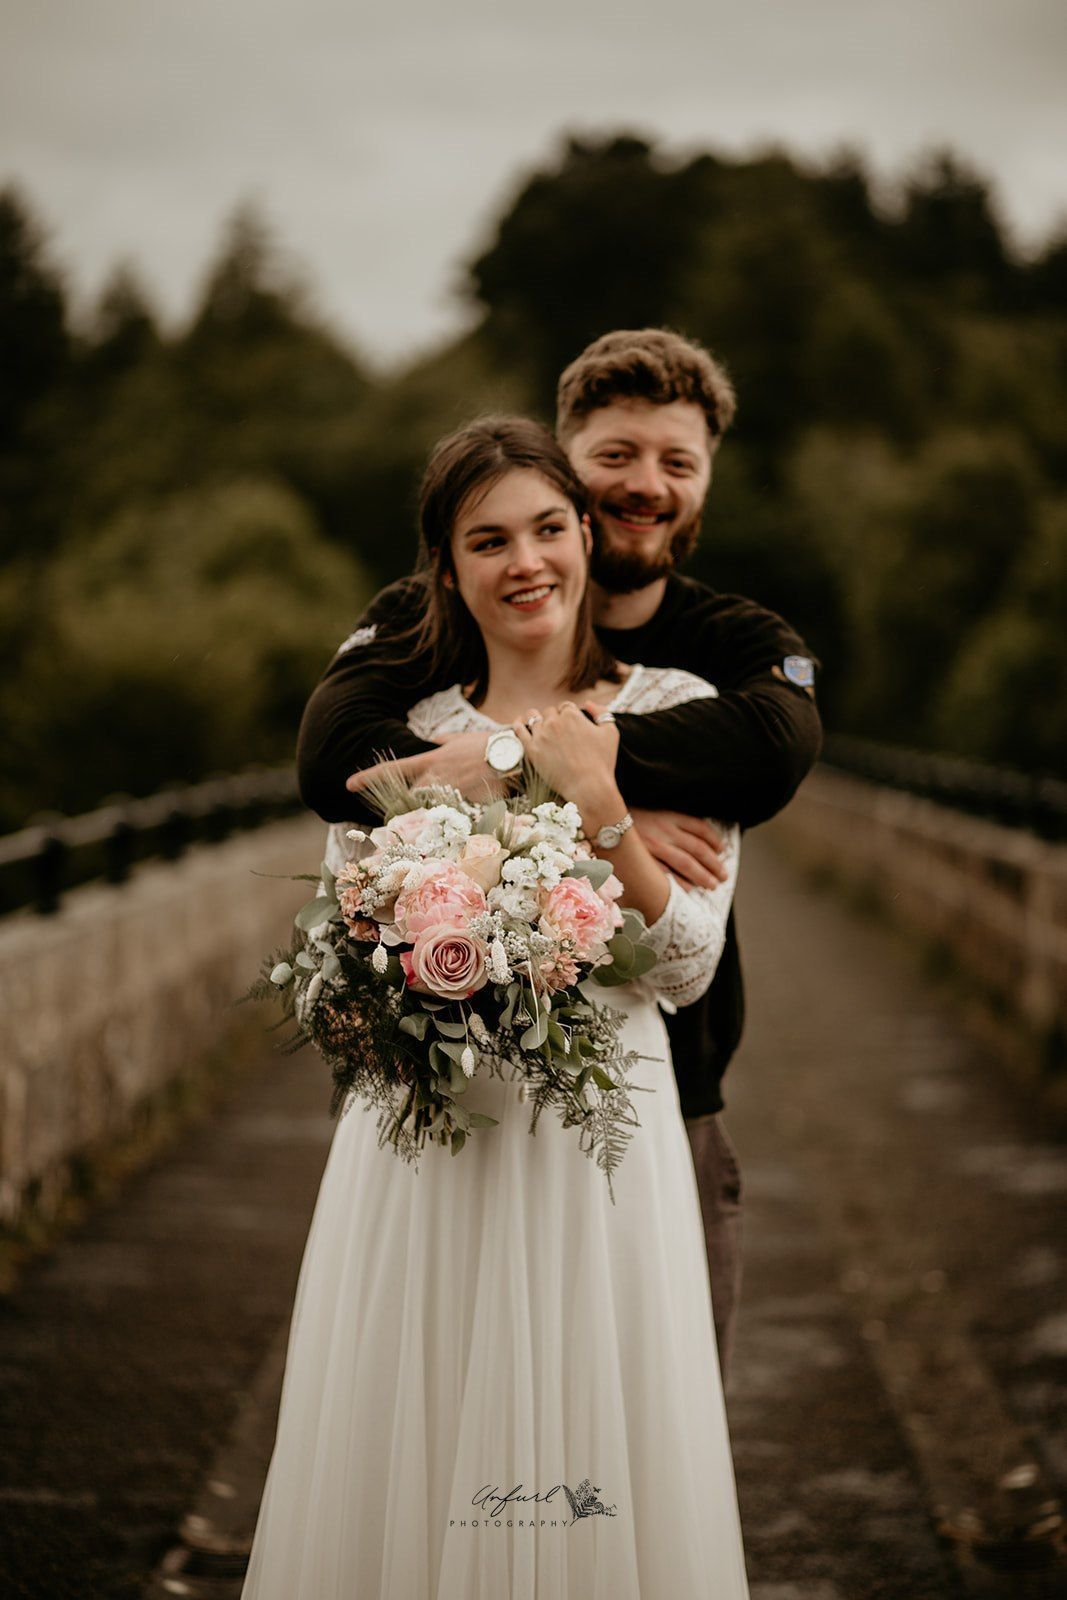 Elopement Wedding Inspiration! Flowers and Photos in 2020 ...